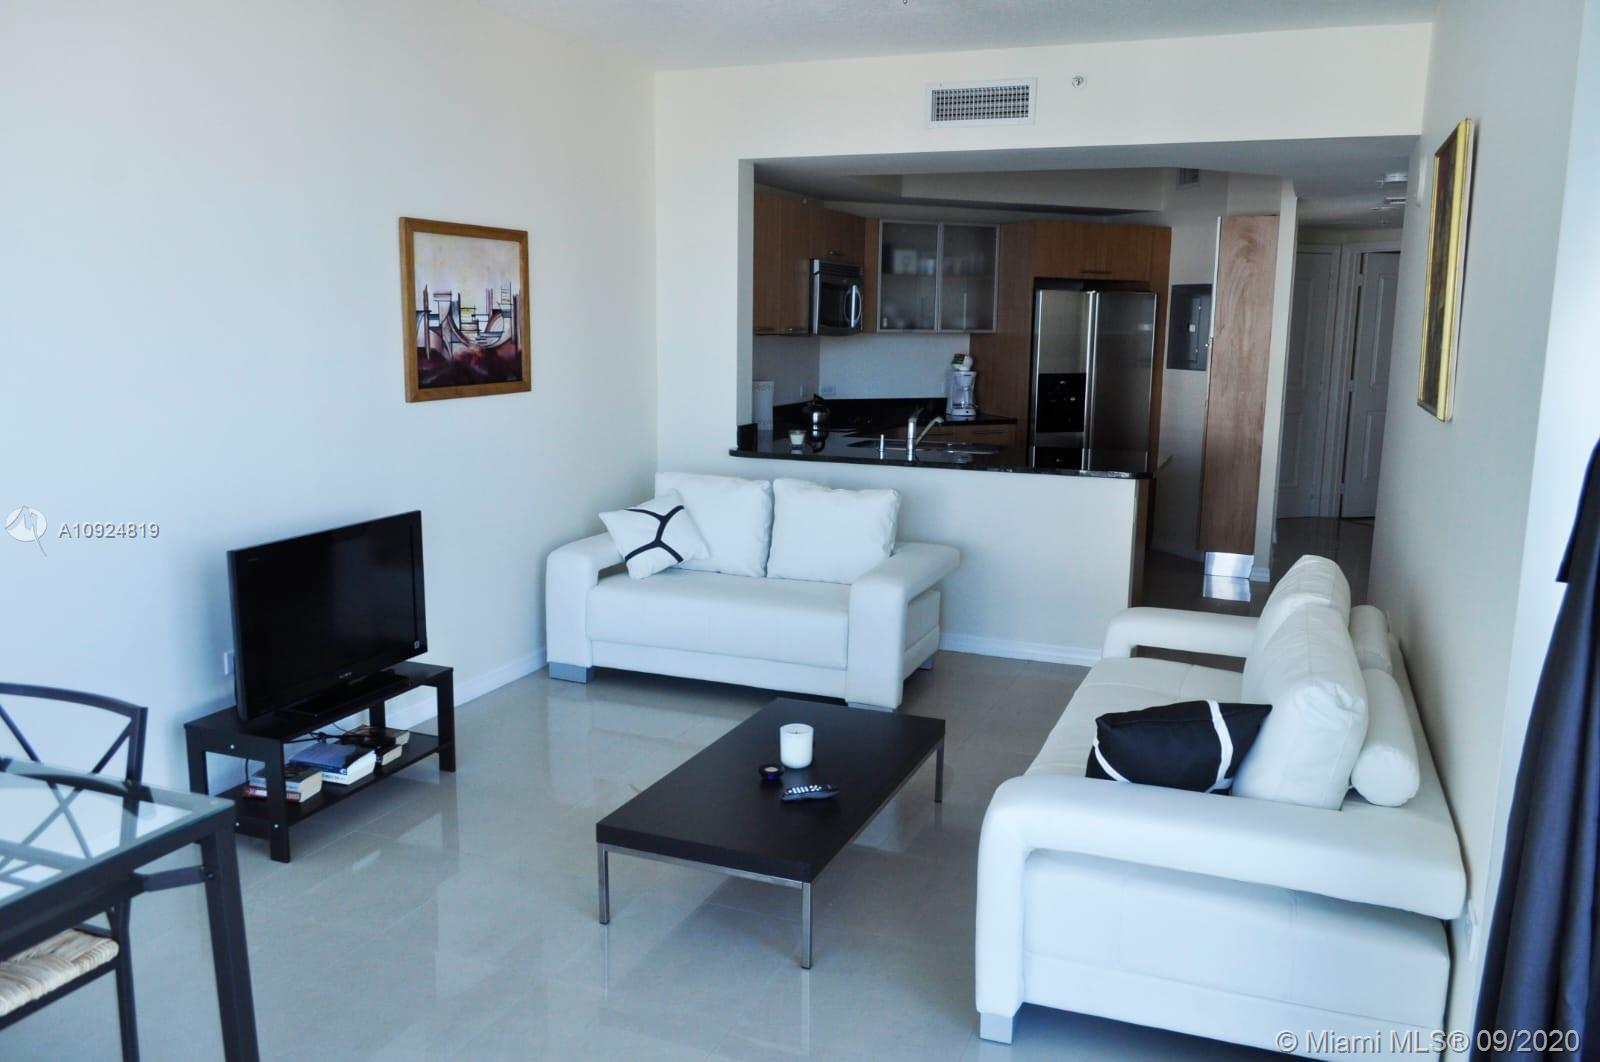 COMPLETELY UPGRADED UNIT WITH MARBLE FLOORS, TOP OF THE LINE STAINLESS STEEL APLLIANCES, MARBLE BATH